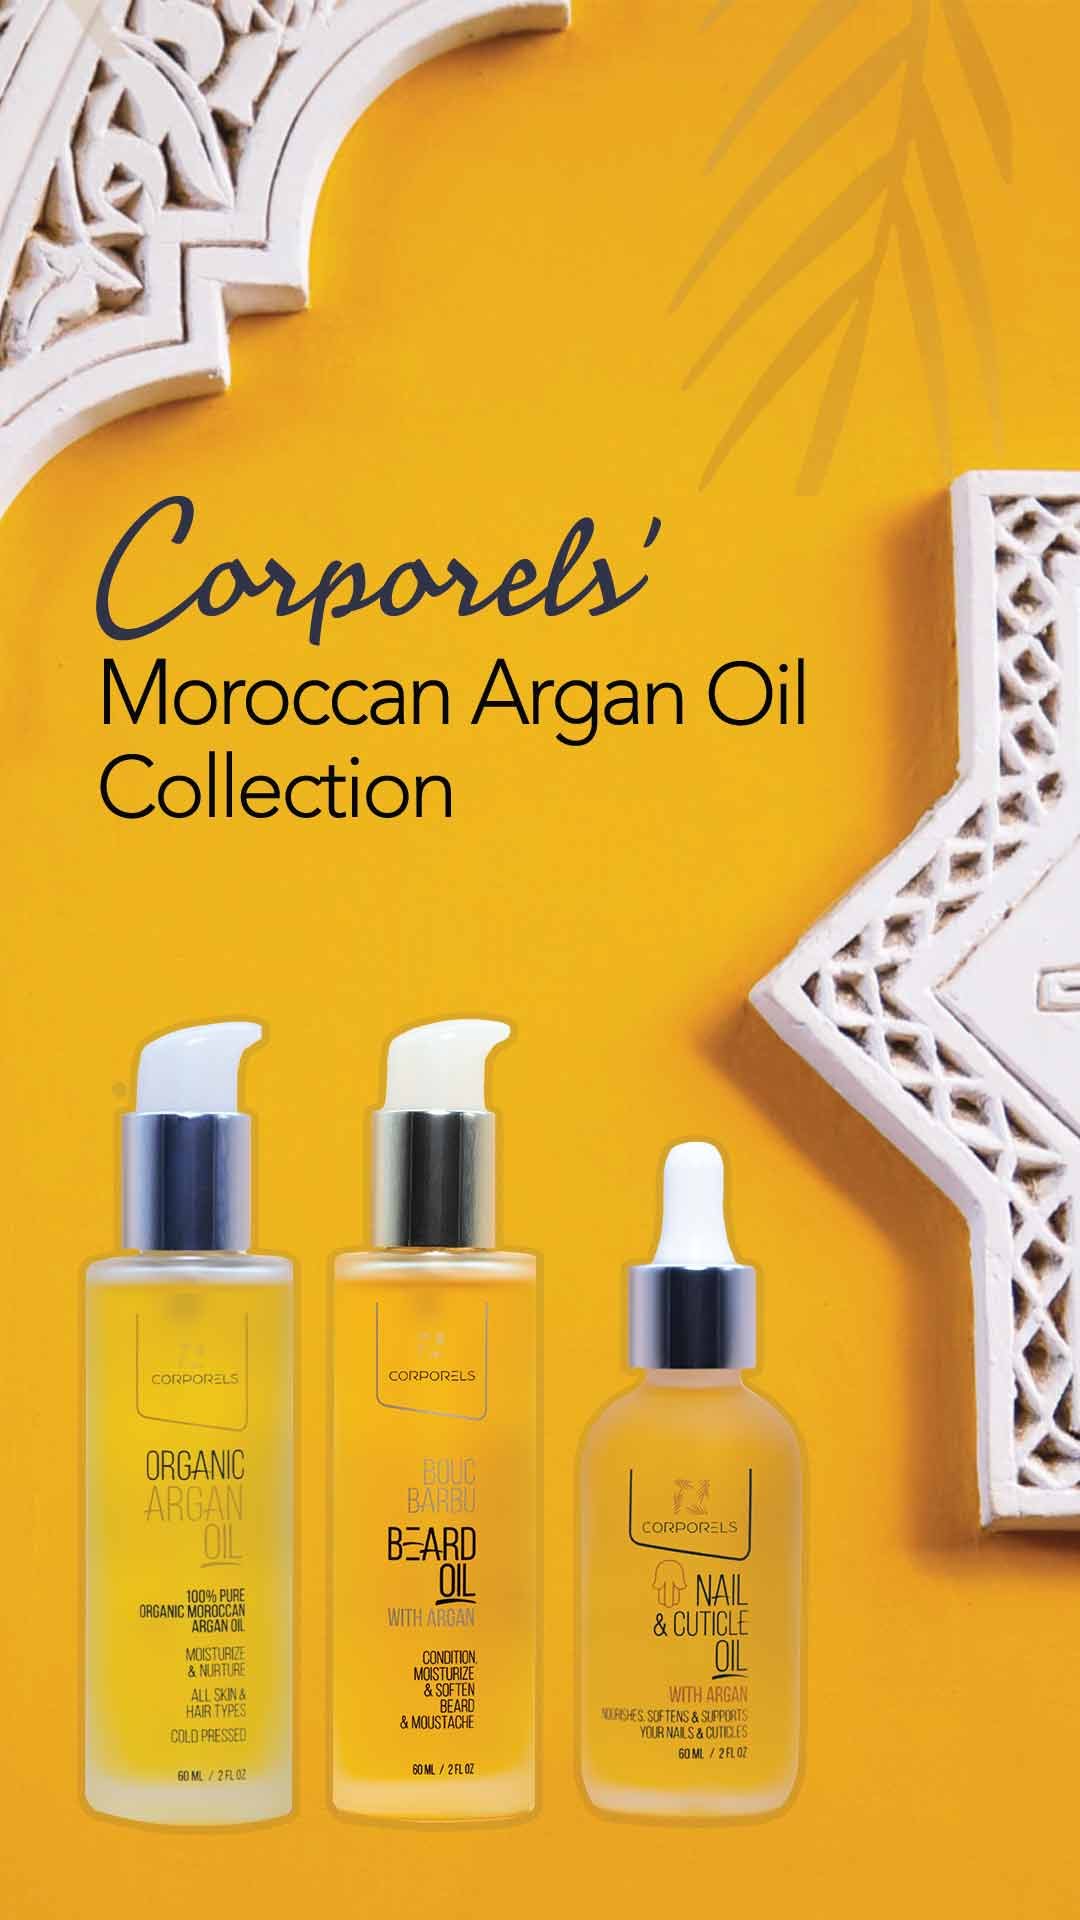 Corporels – new partner to Argan Care